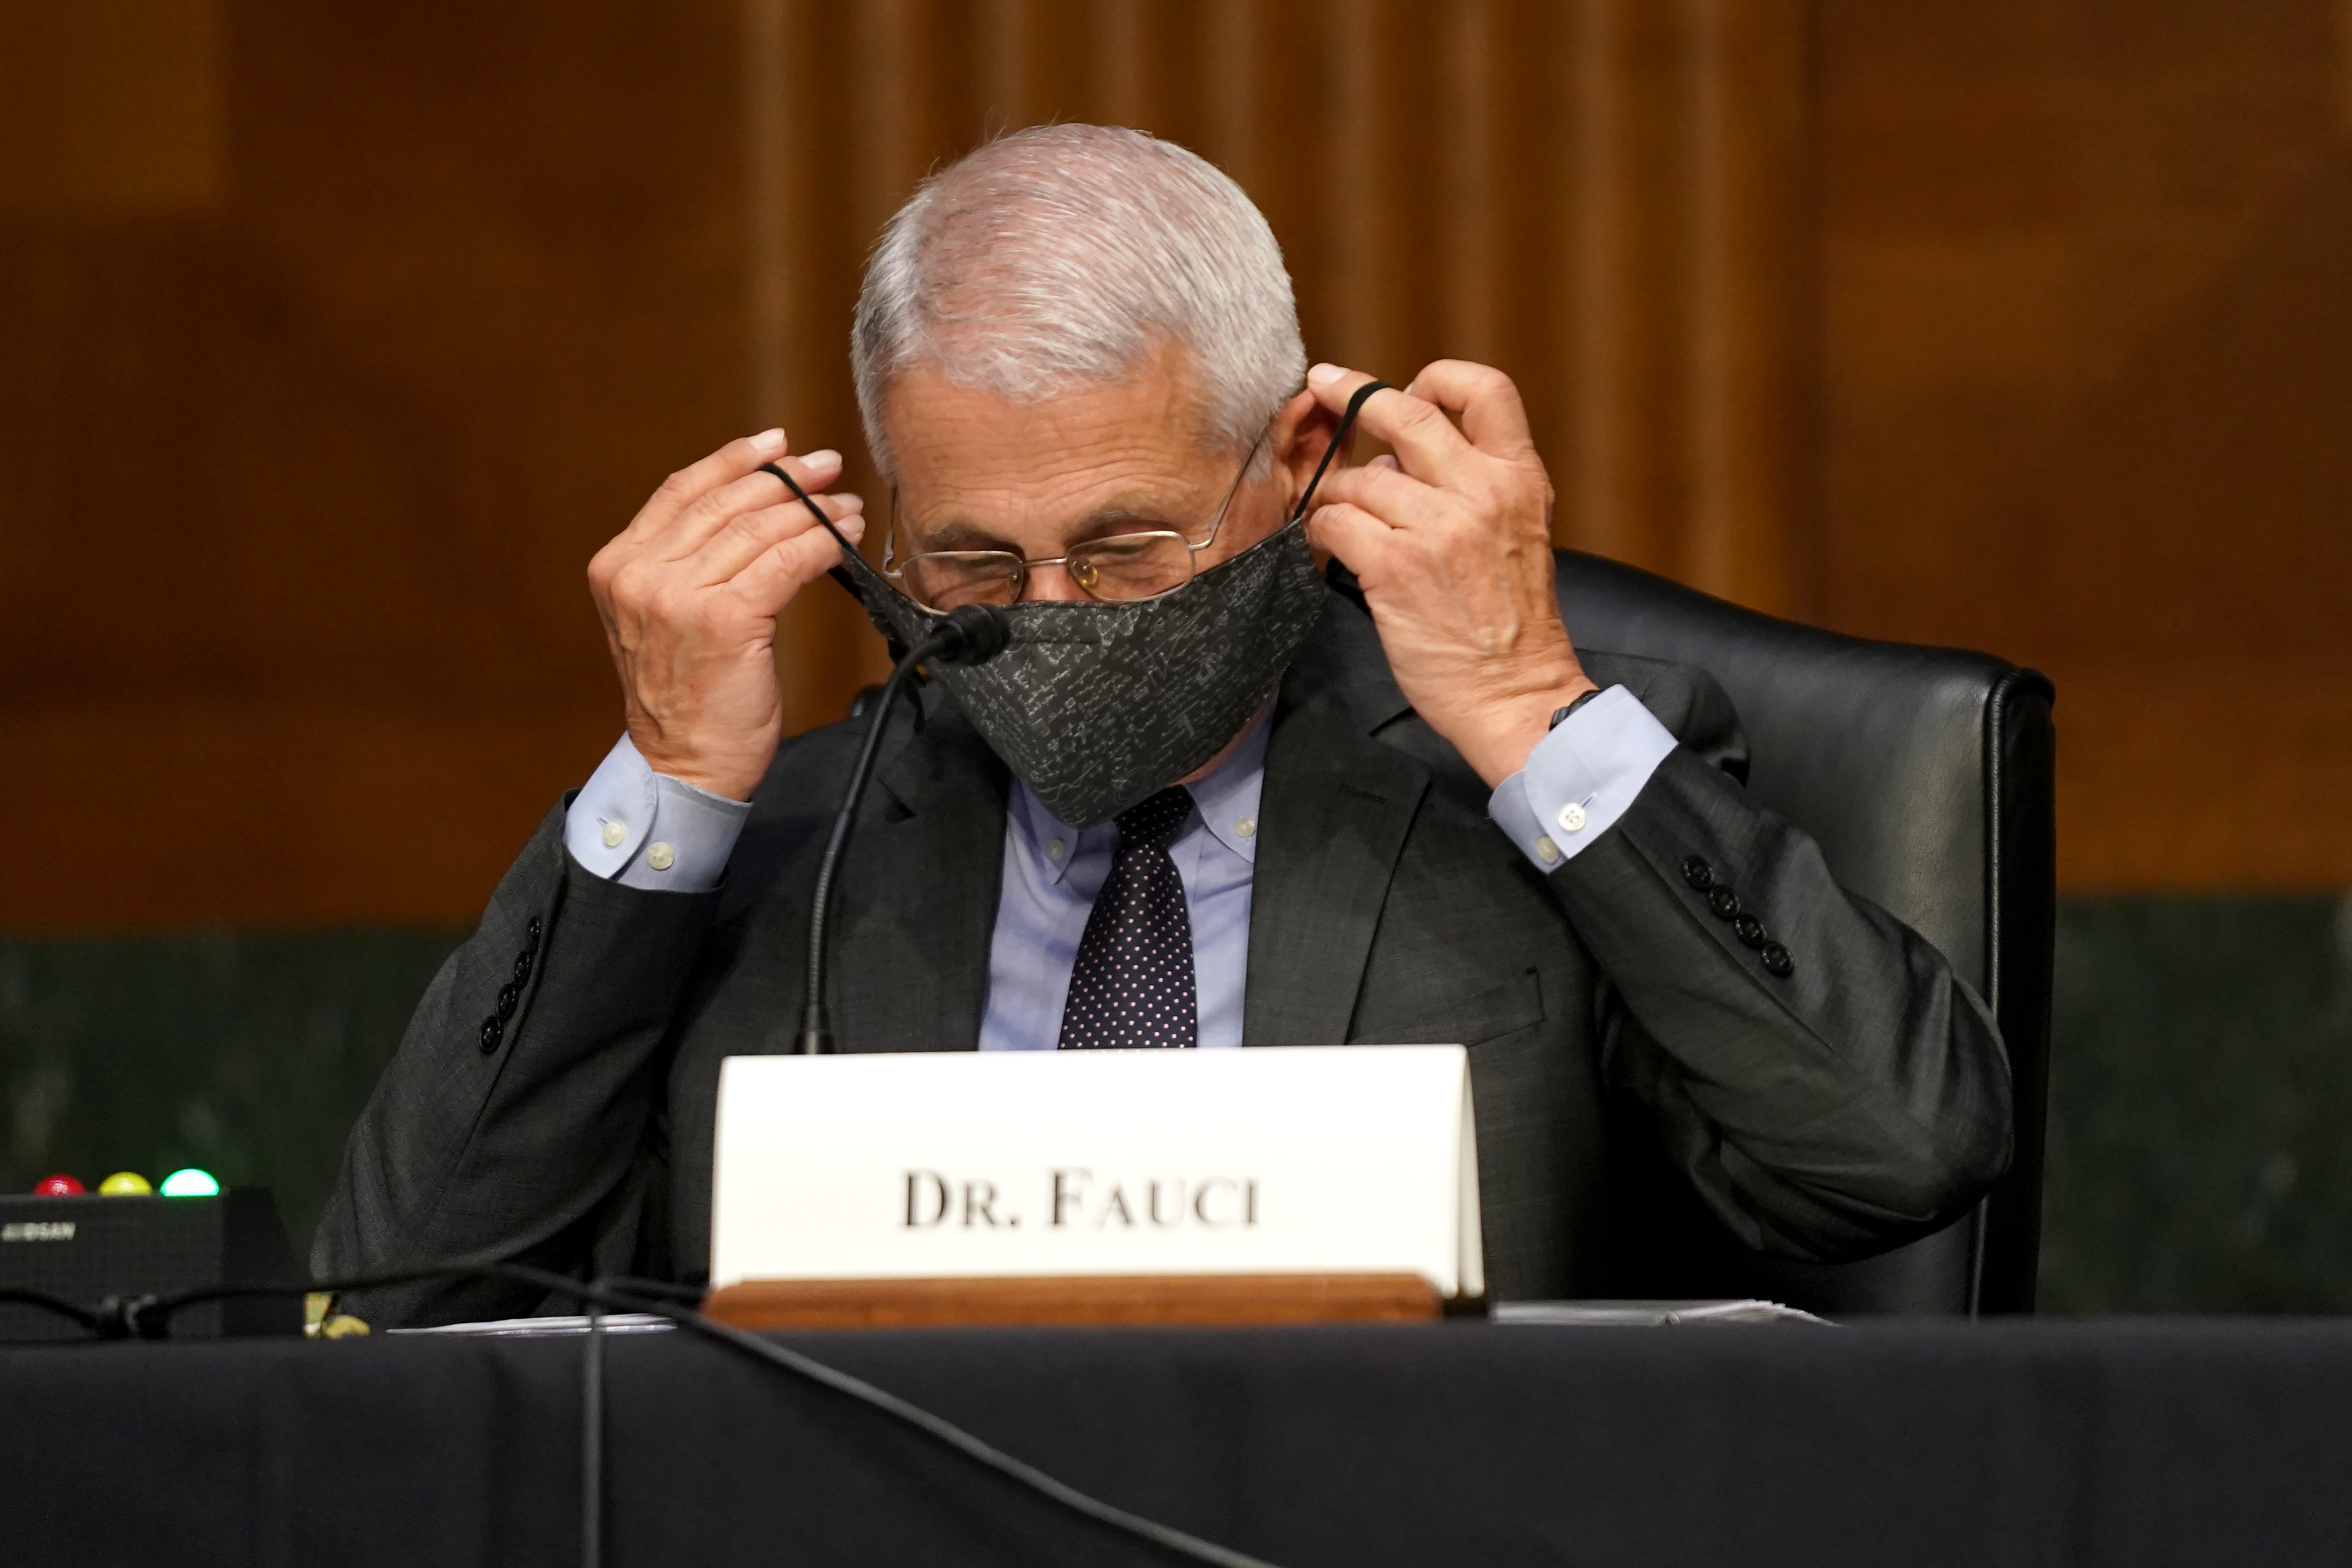 Fauci Admits to Masking After Vaccination Solely for Optics